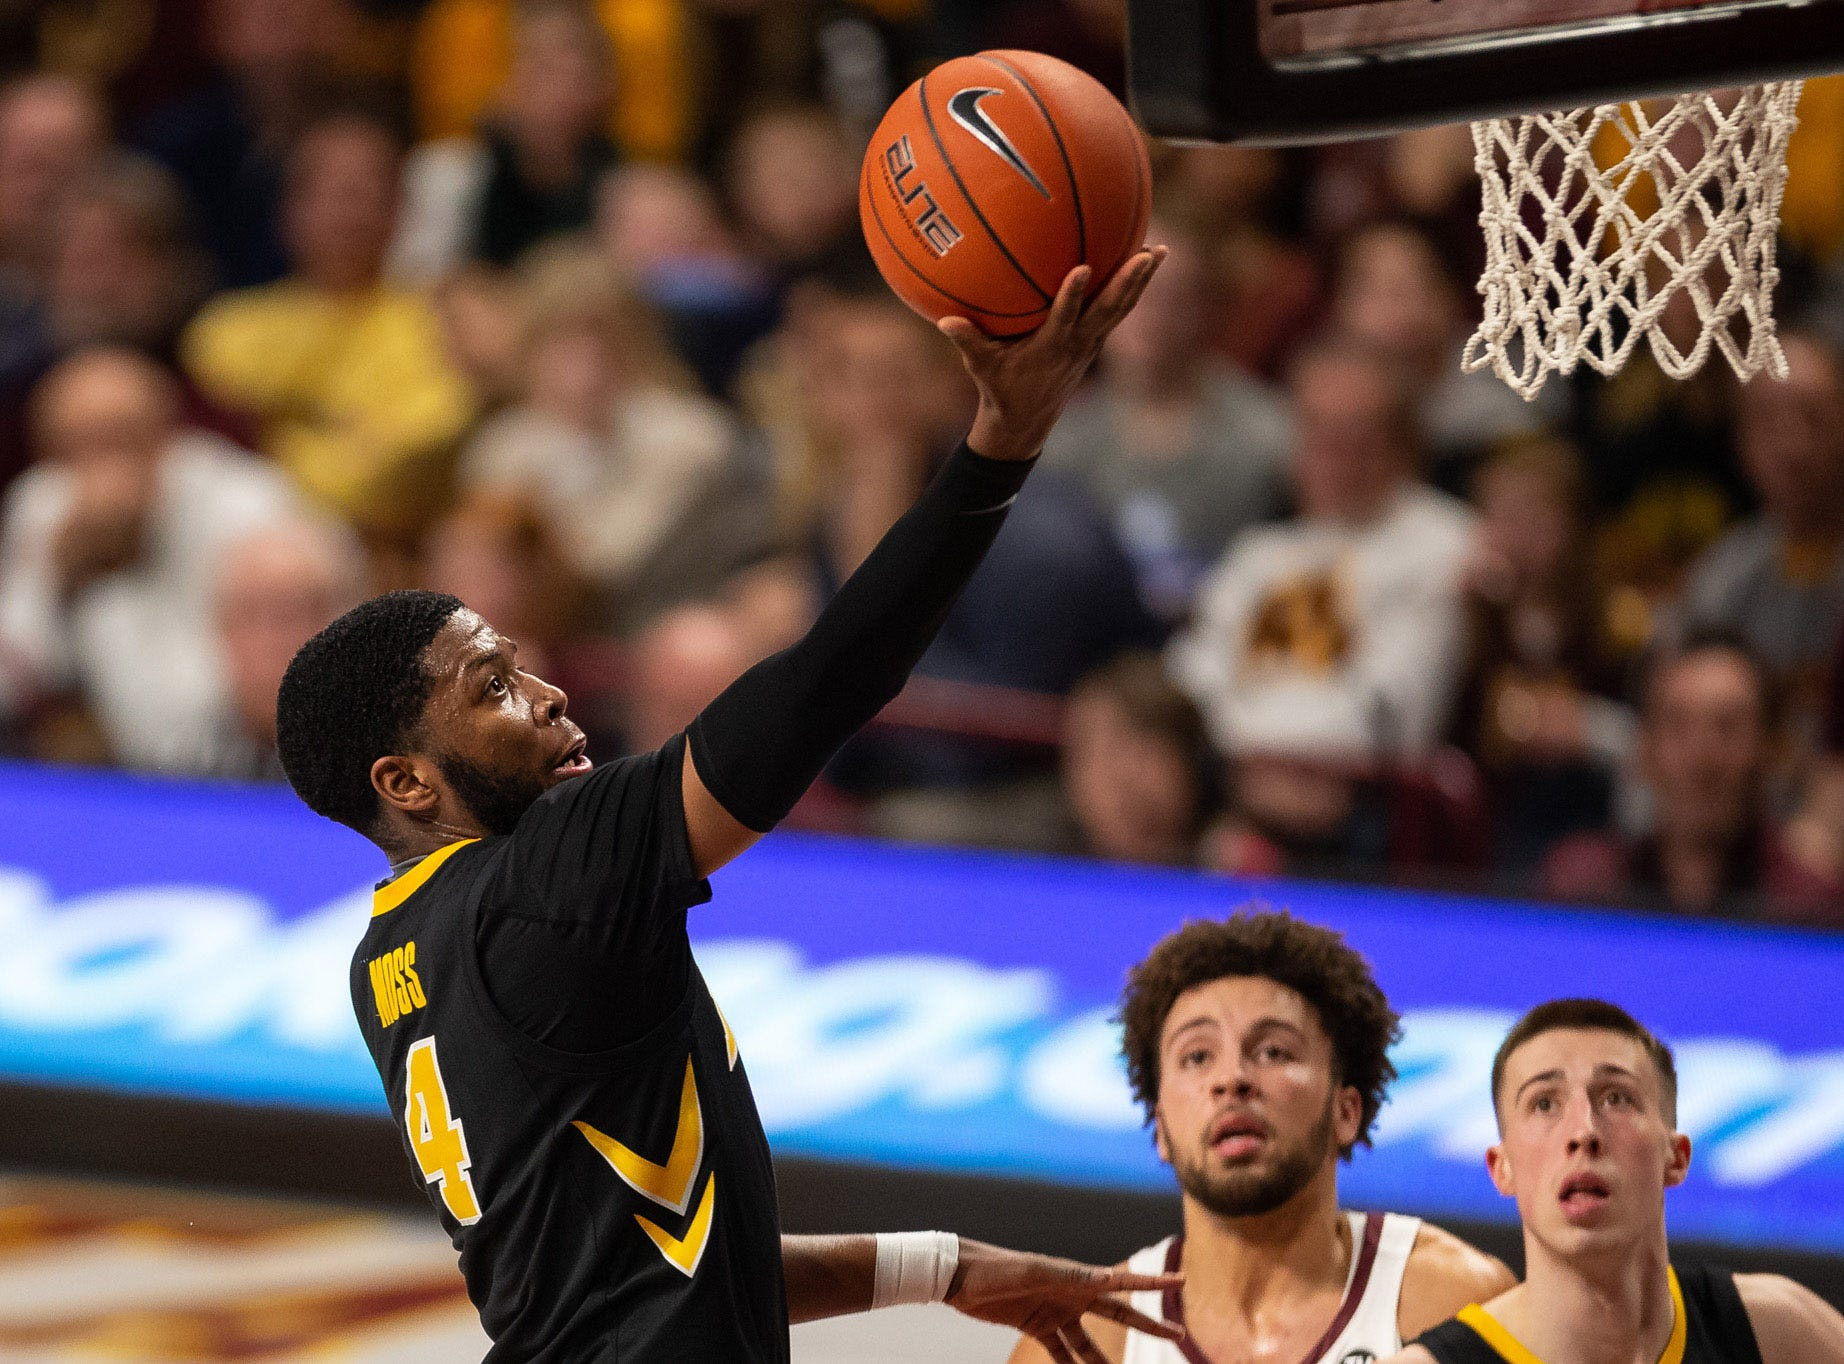 Iowa Hawkeyes guard Isaiah Moss (4) shoots the ball during the second half against the Minnesota Gophers at Williams Arena. Mandatory Credit: Harrison Barden-USA TODAY Sports